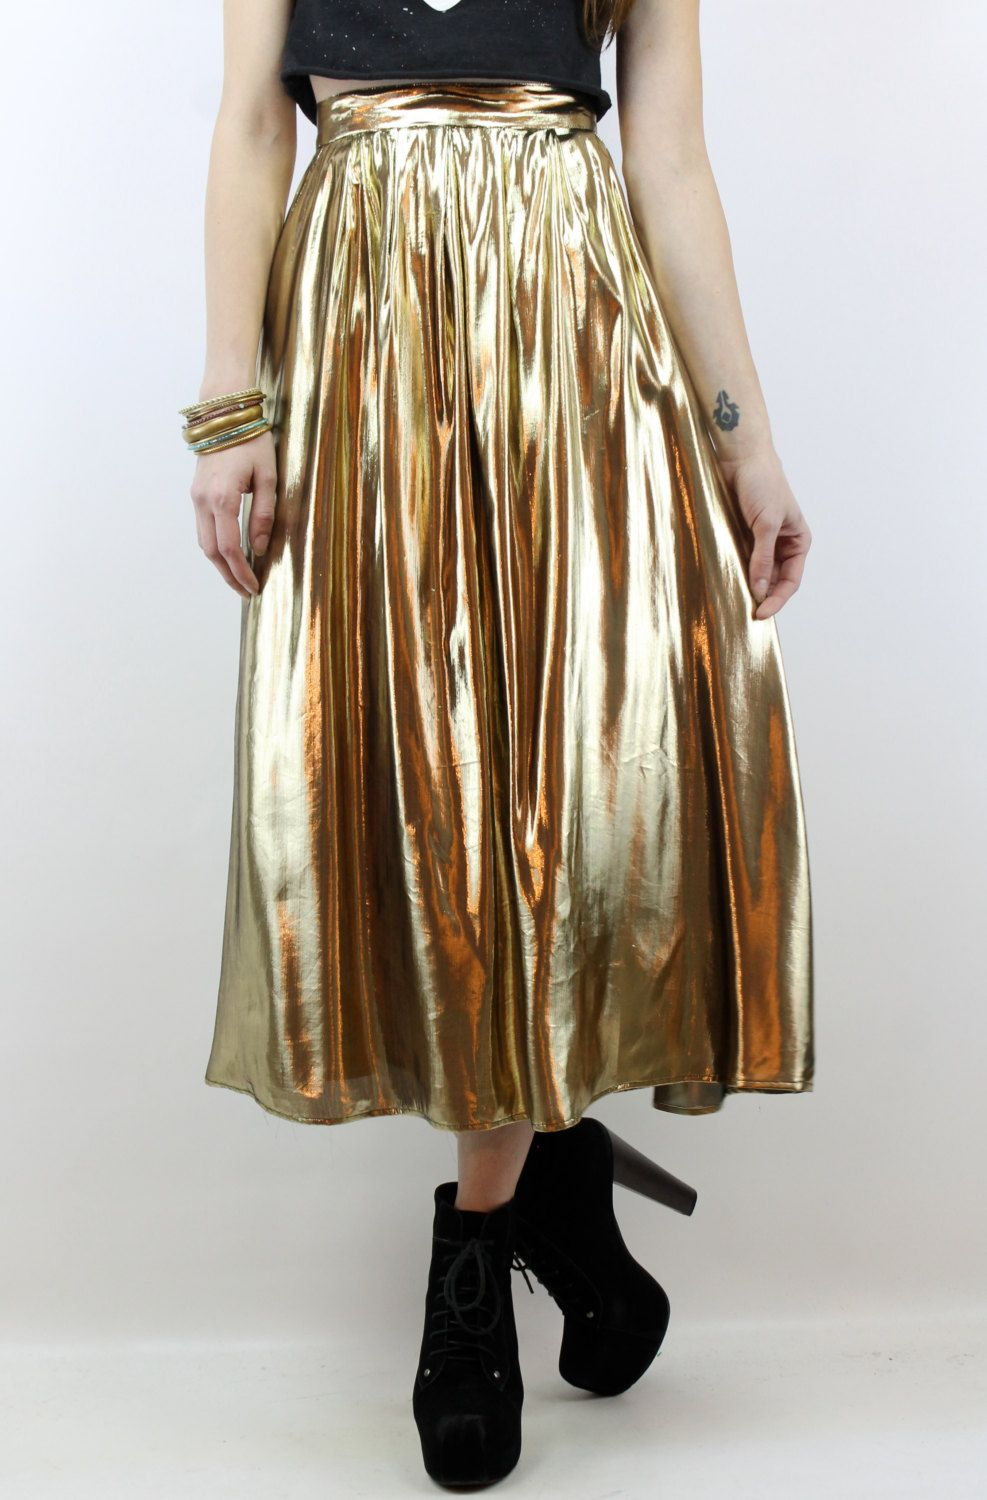 Vintage 80s 90s Gold Lame High Waisted Skirt Maxi Skirt XS High ...